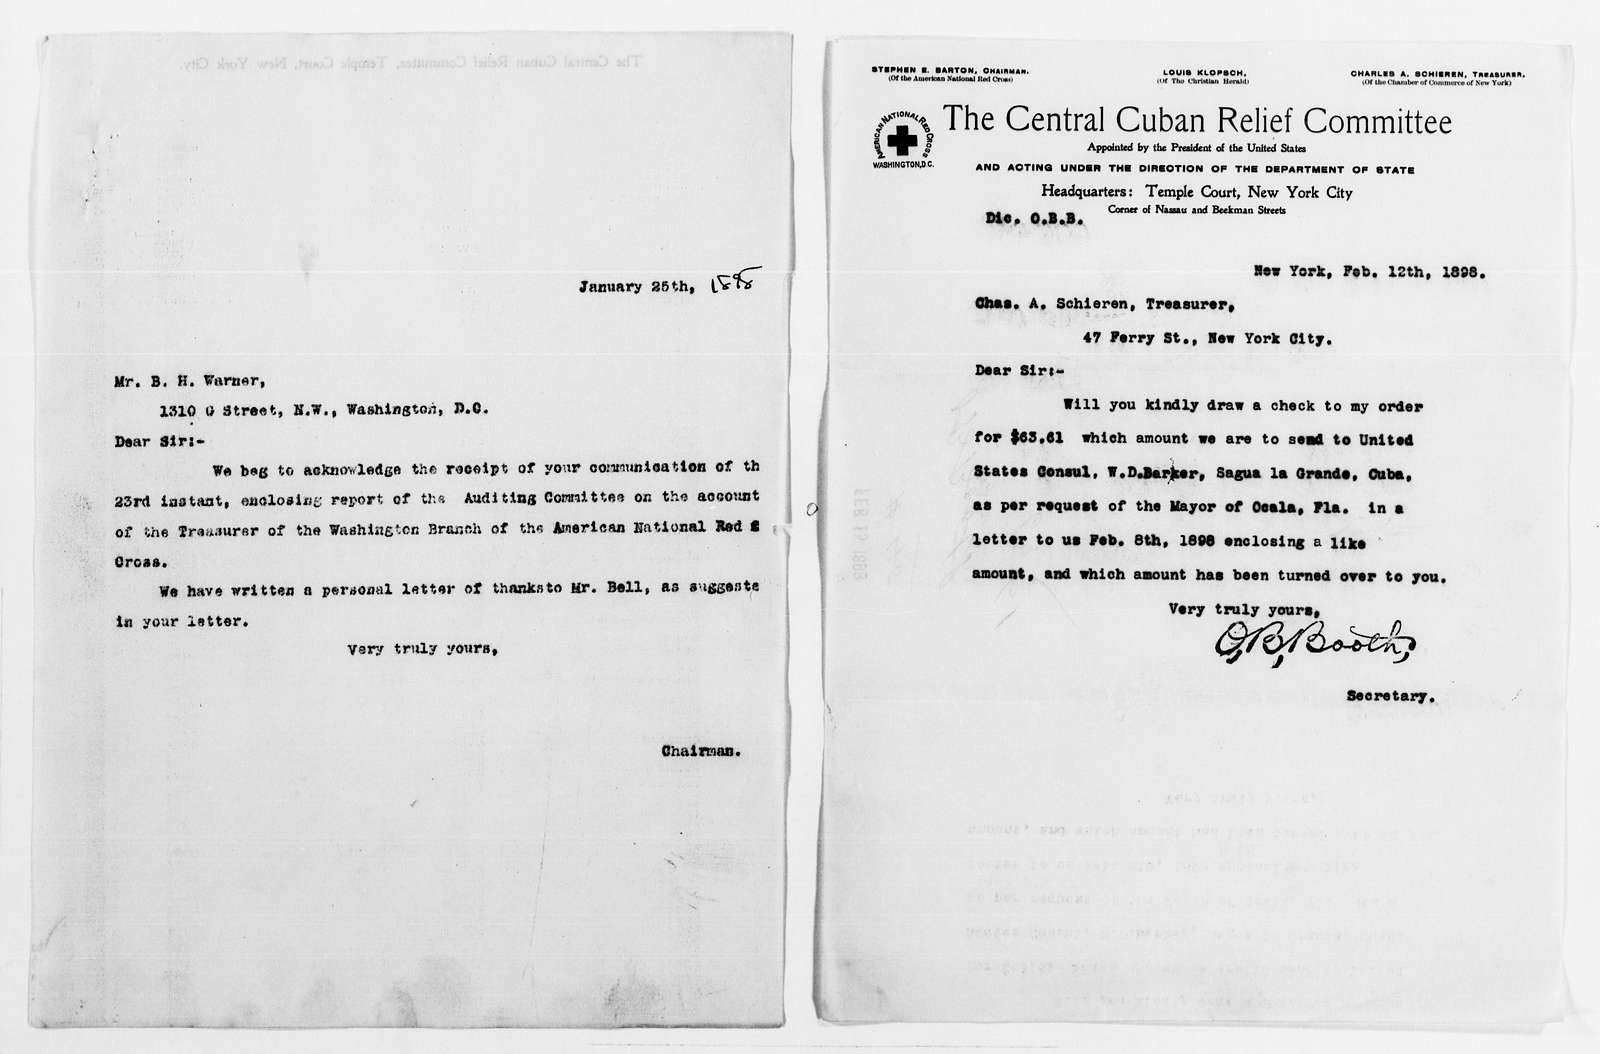 Clara Barton Papers: Red Cross File, 1863-1957; American National Red Cross, 1878-1957; Relief operations; Spanish-American War; Accounts and supplies; Correspondence, 1898-1899, undated